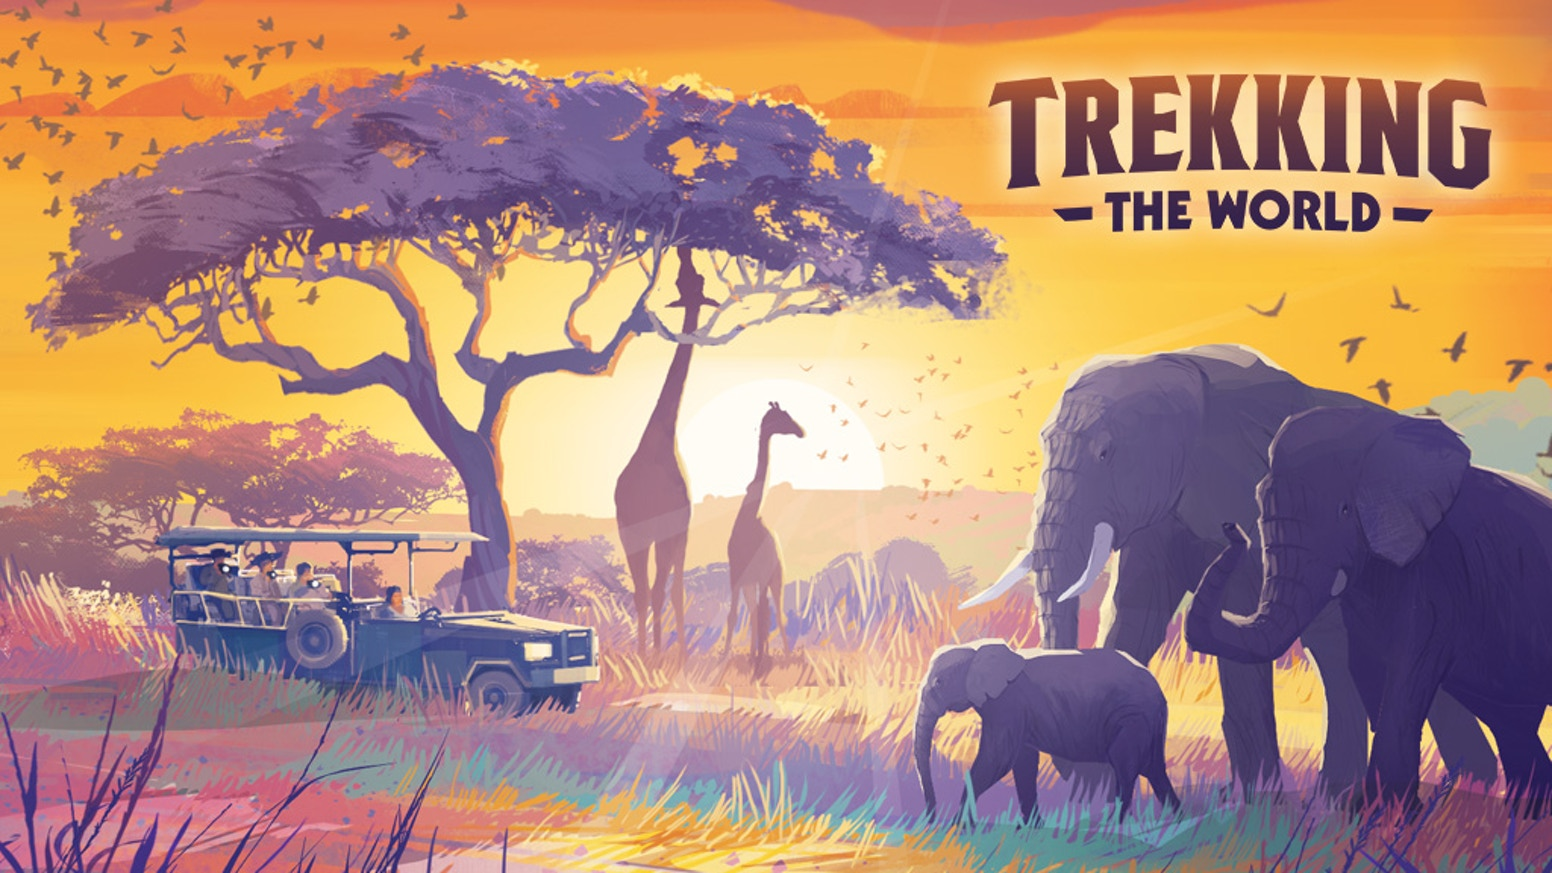 A beautifully illustrated game celebrating the pleasures and wonders of world travel.